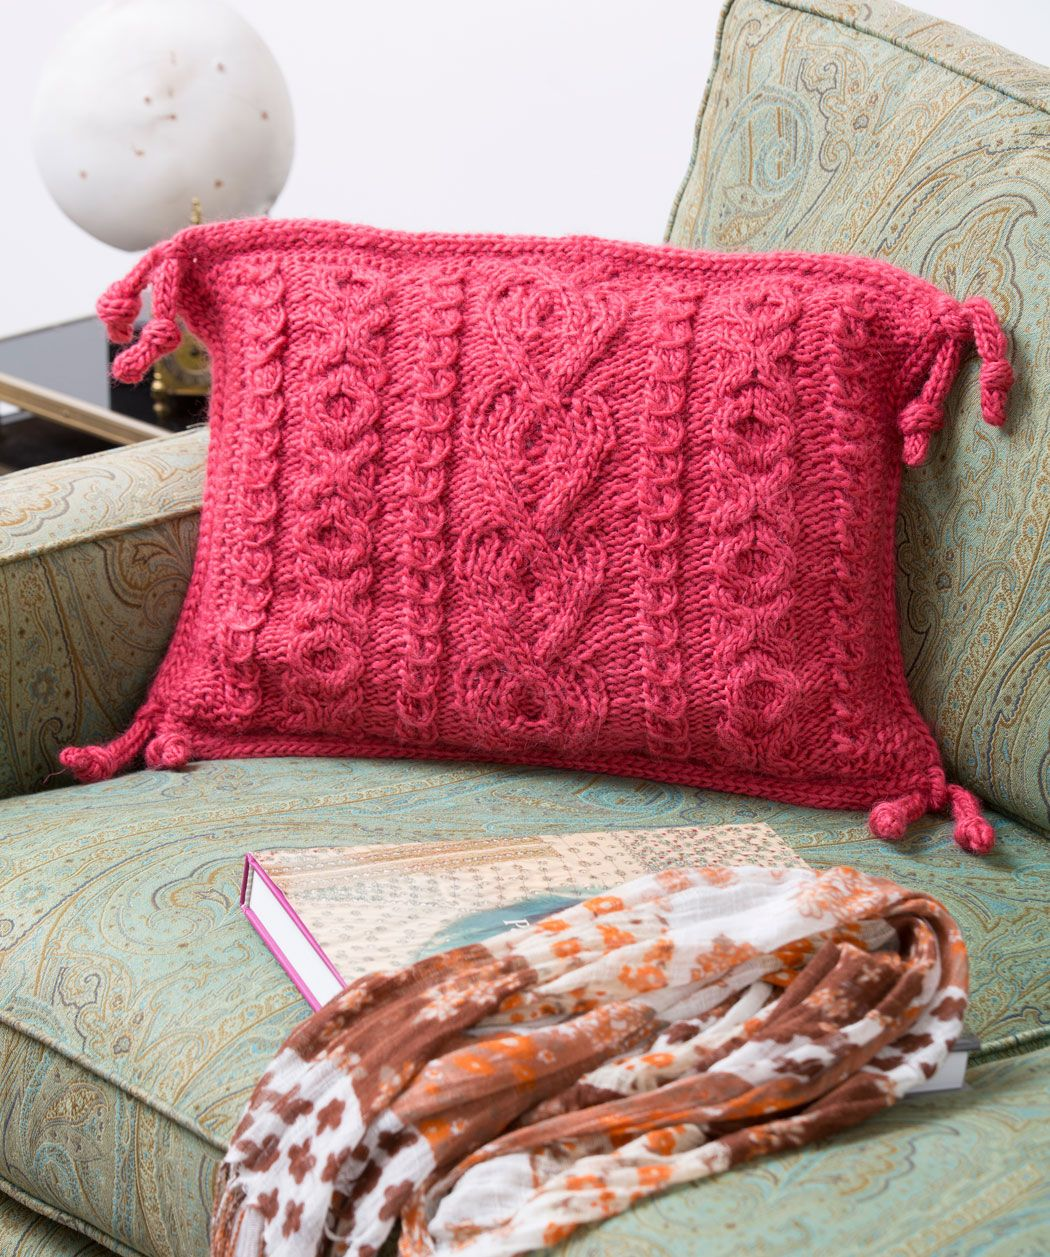 Knitting pillow patterns for beginners lets cuddle pillow knitting pillow patterns for beginners lets cuddle pillow knitting pattern red heart bankloansurffo Gallery